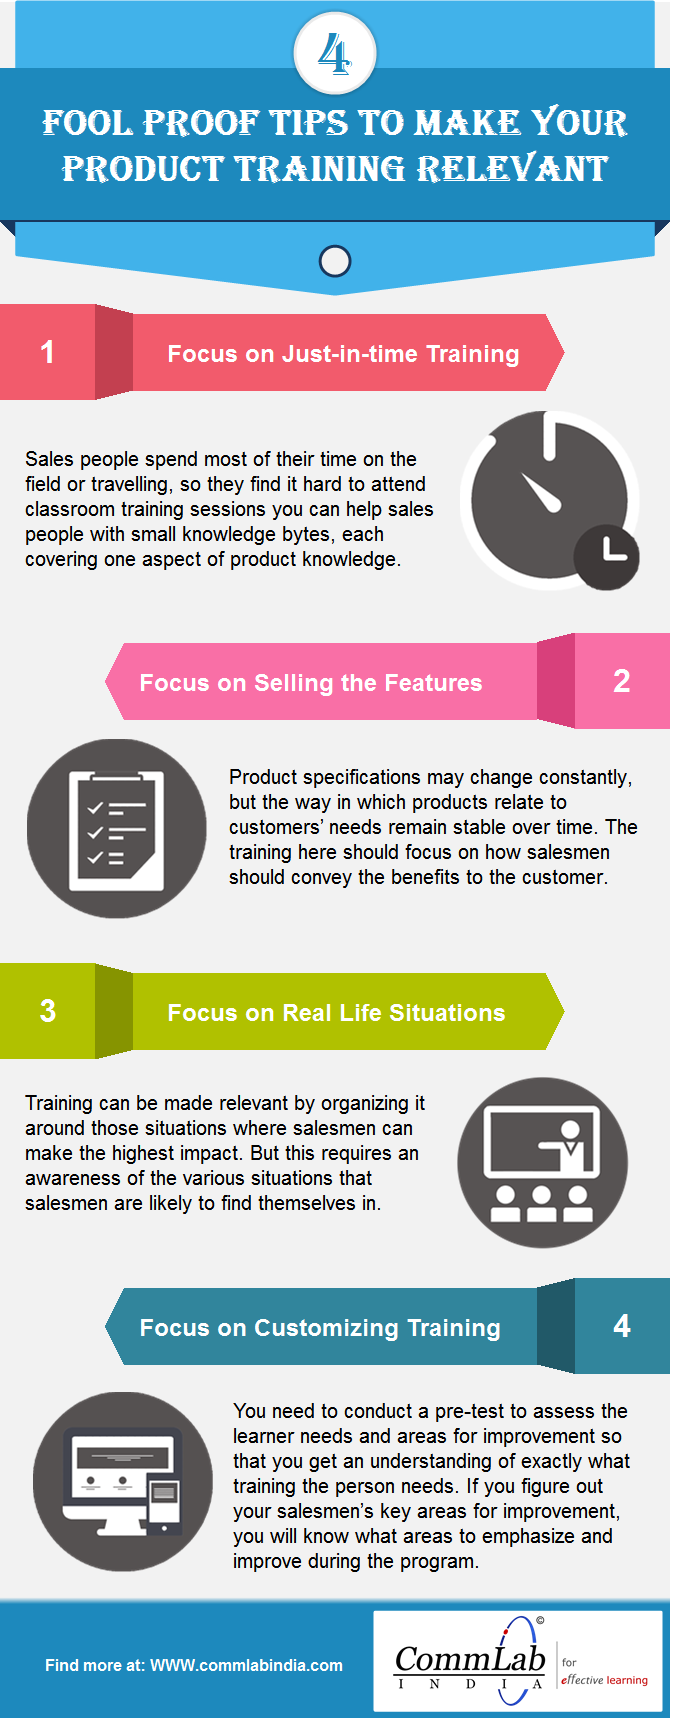 4 Fool Proof Ways To Make Your Product Training Relevant [Infographic]